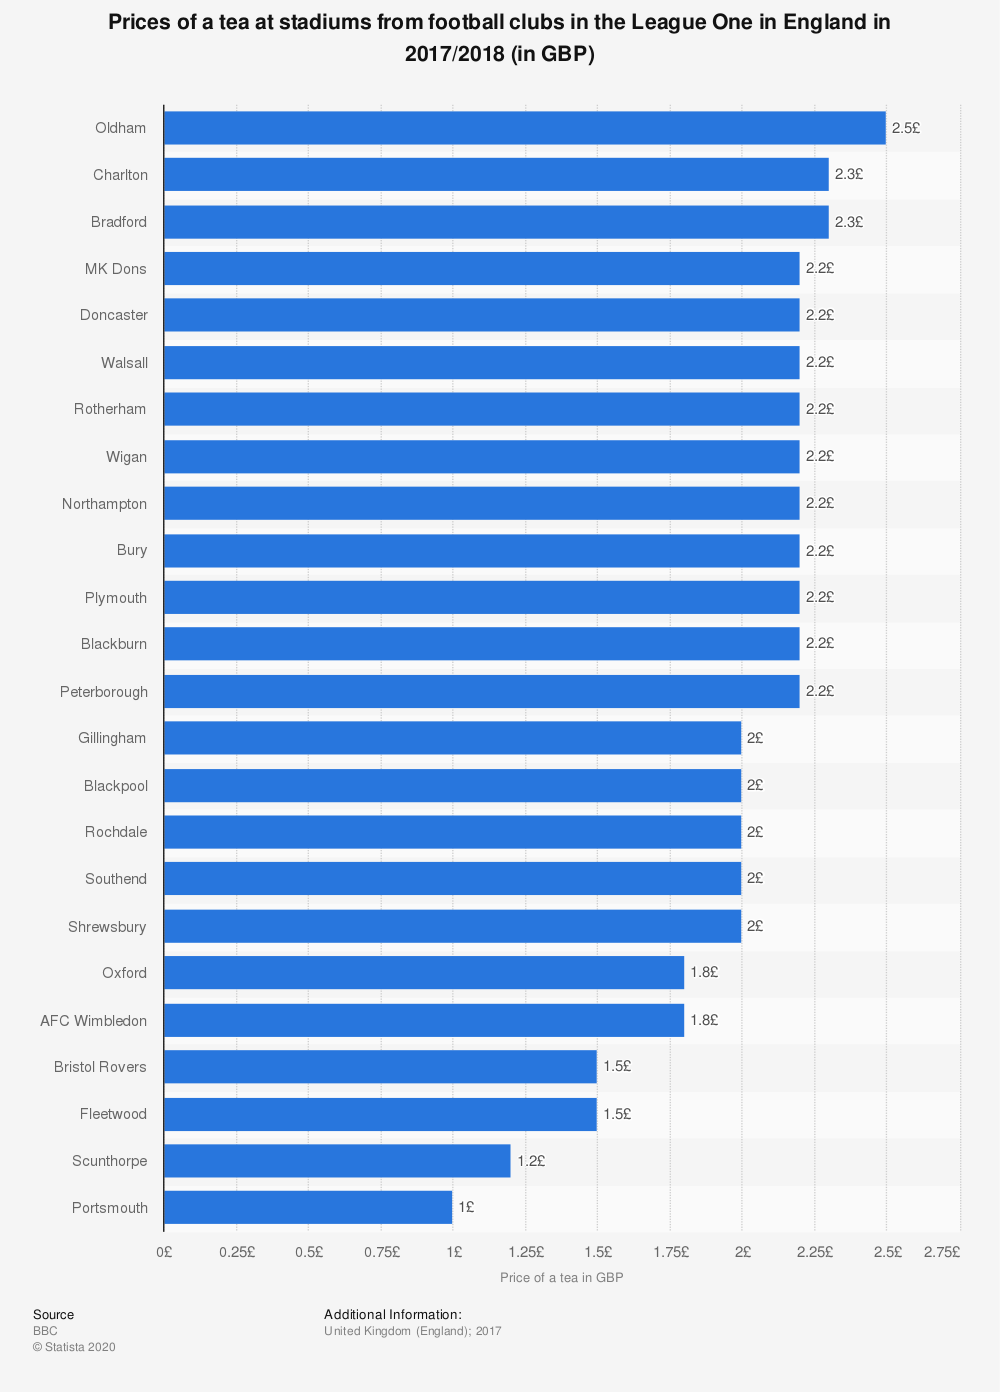 Statistic: Prices of a tea at stadiums from football clubs in the League One in England in 2017/2018  (in GBP) | Statista